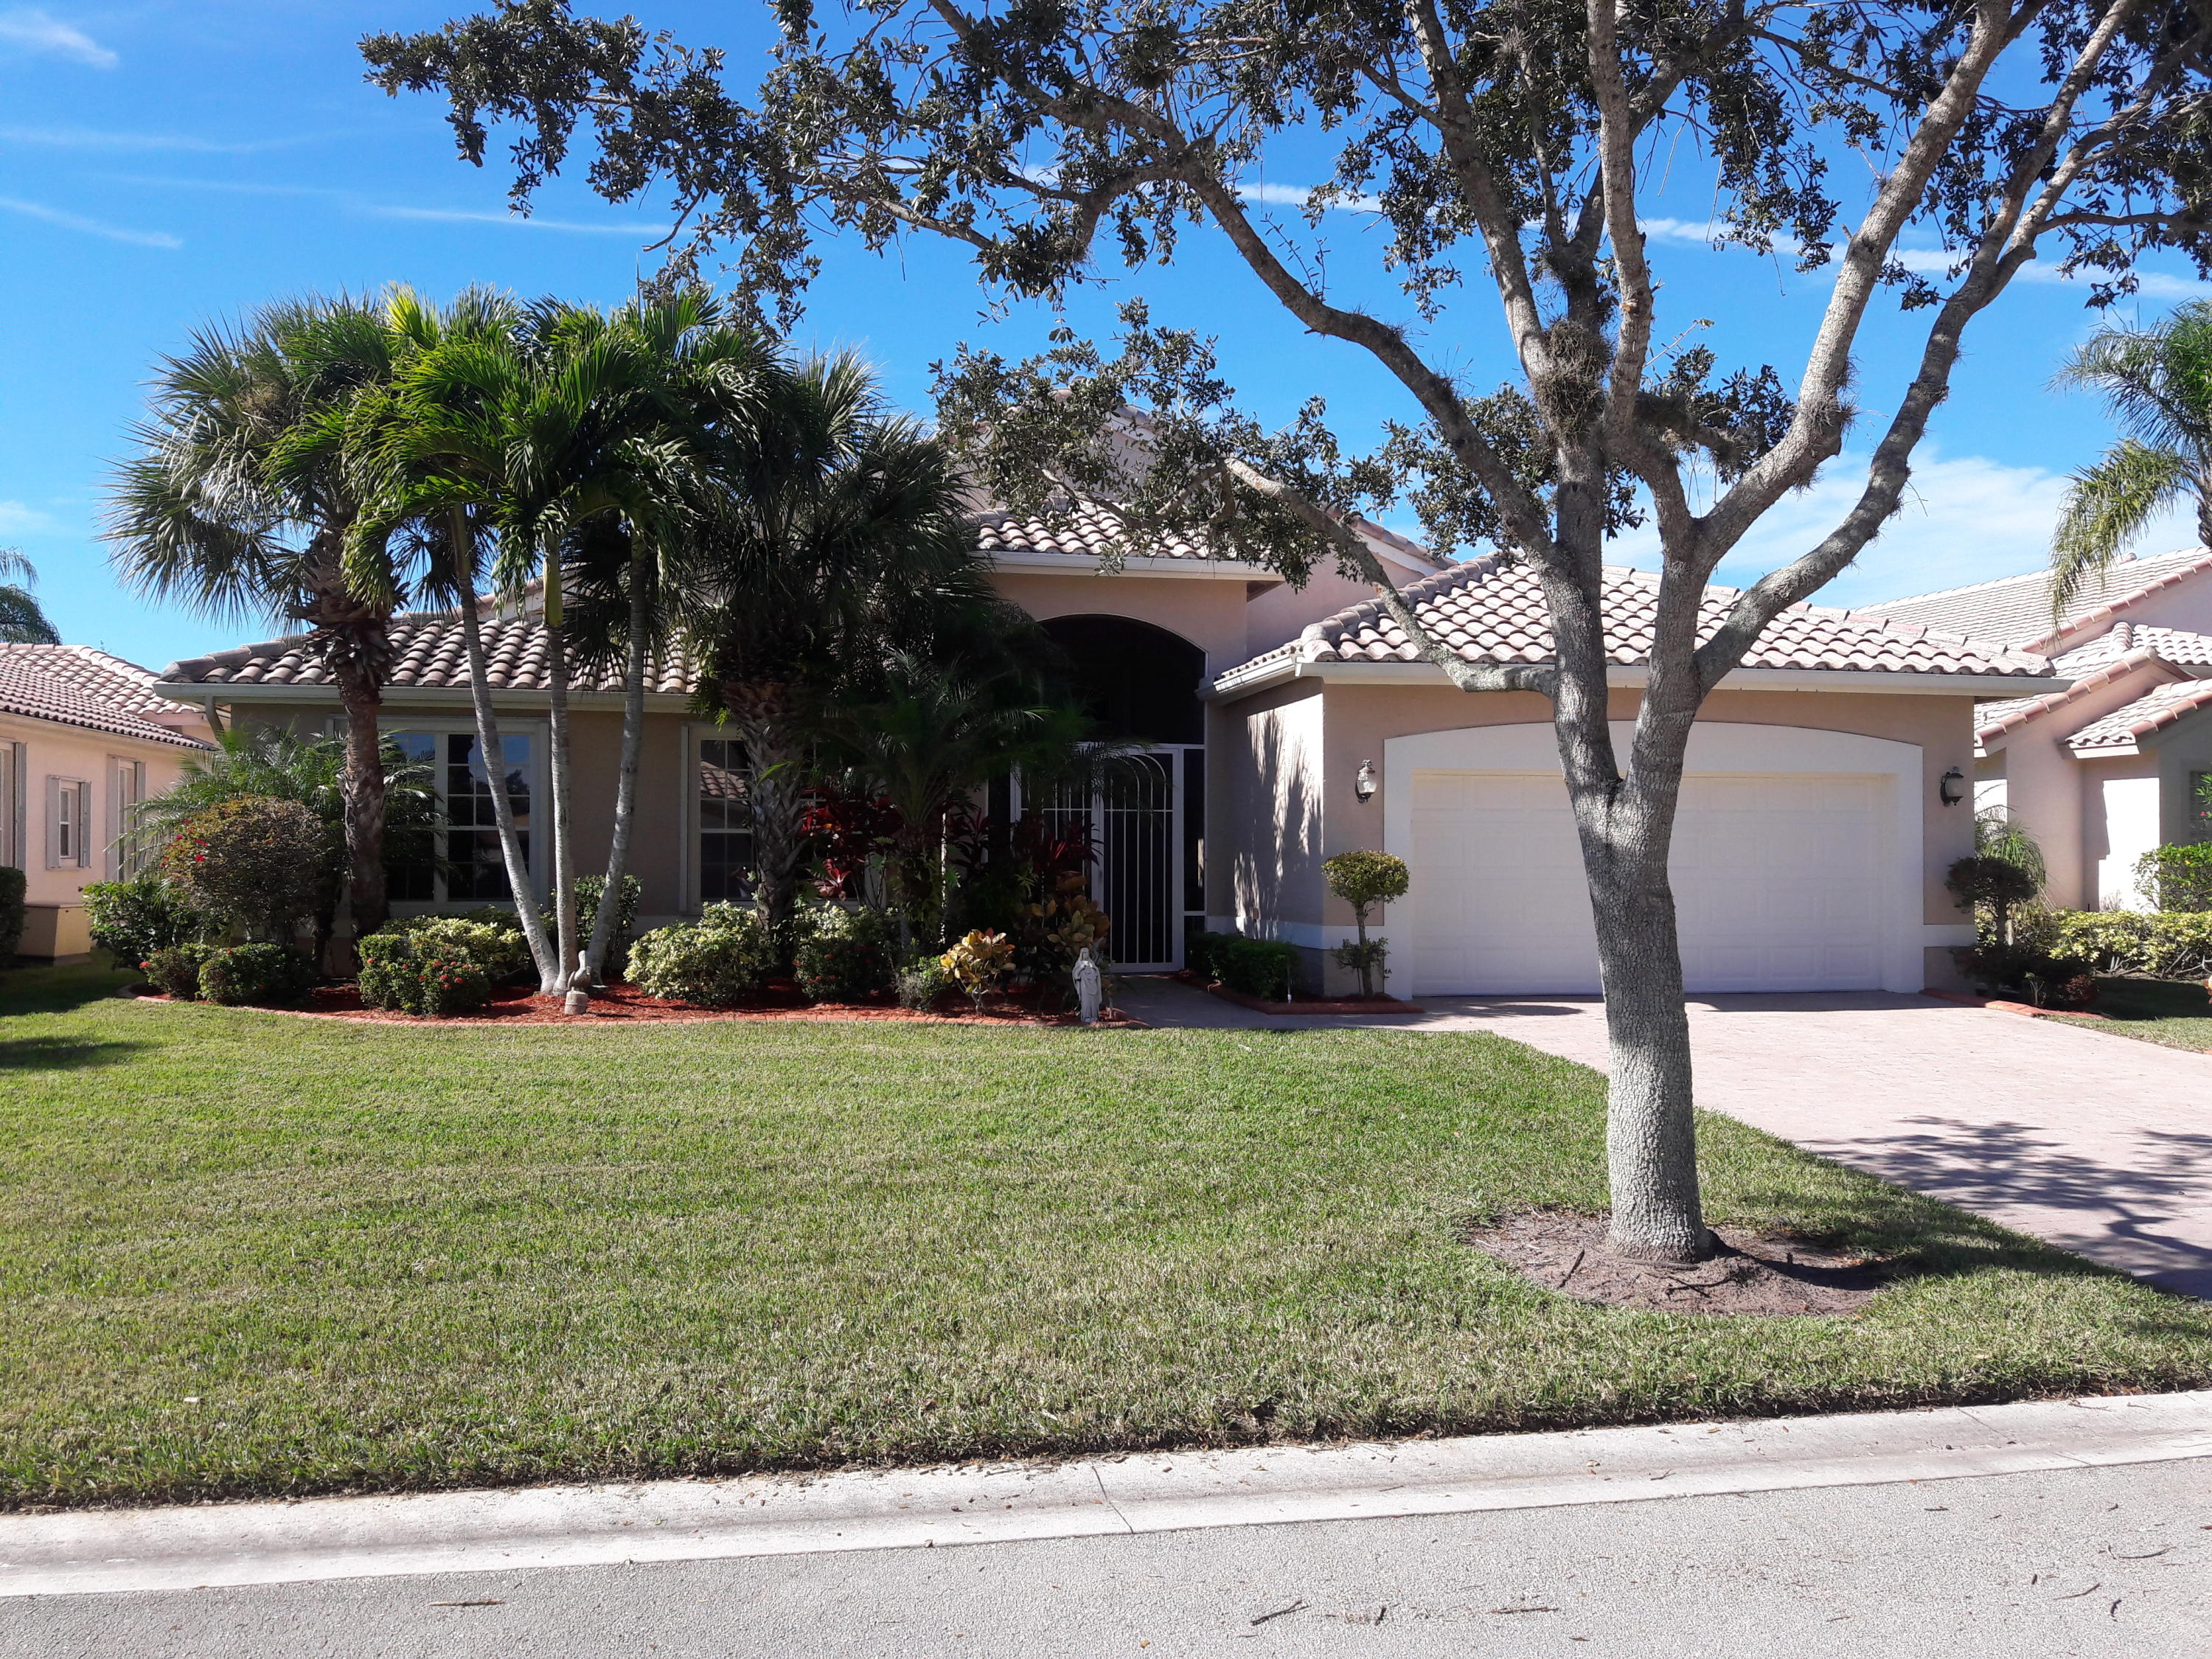 425 Nw Coolwater Court, Saint Lucie West, FL 34986